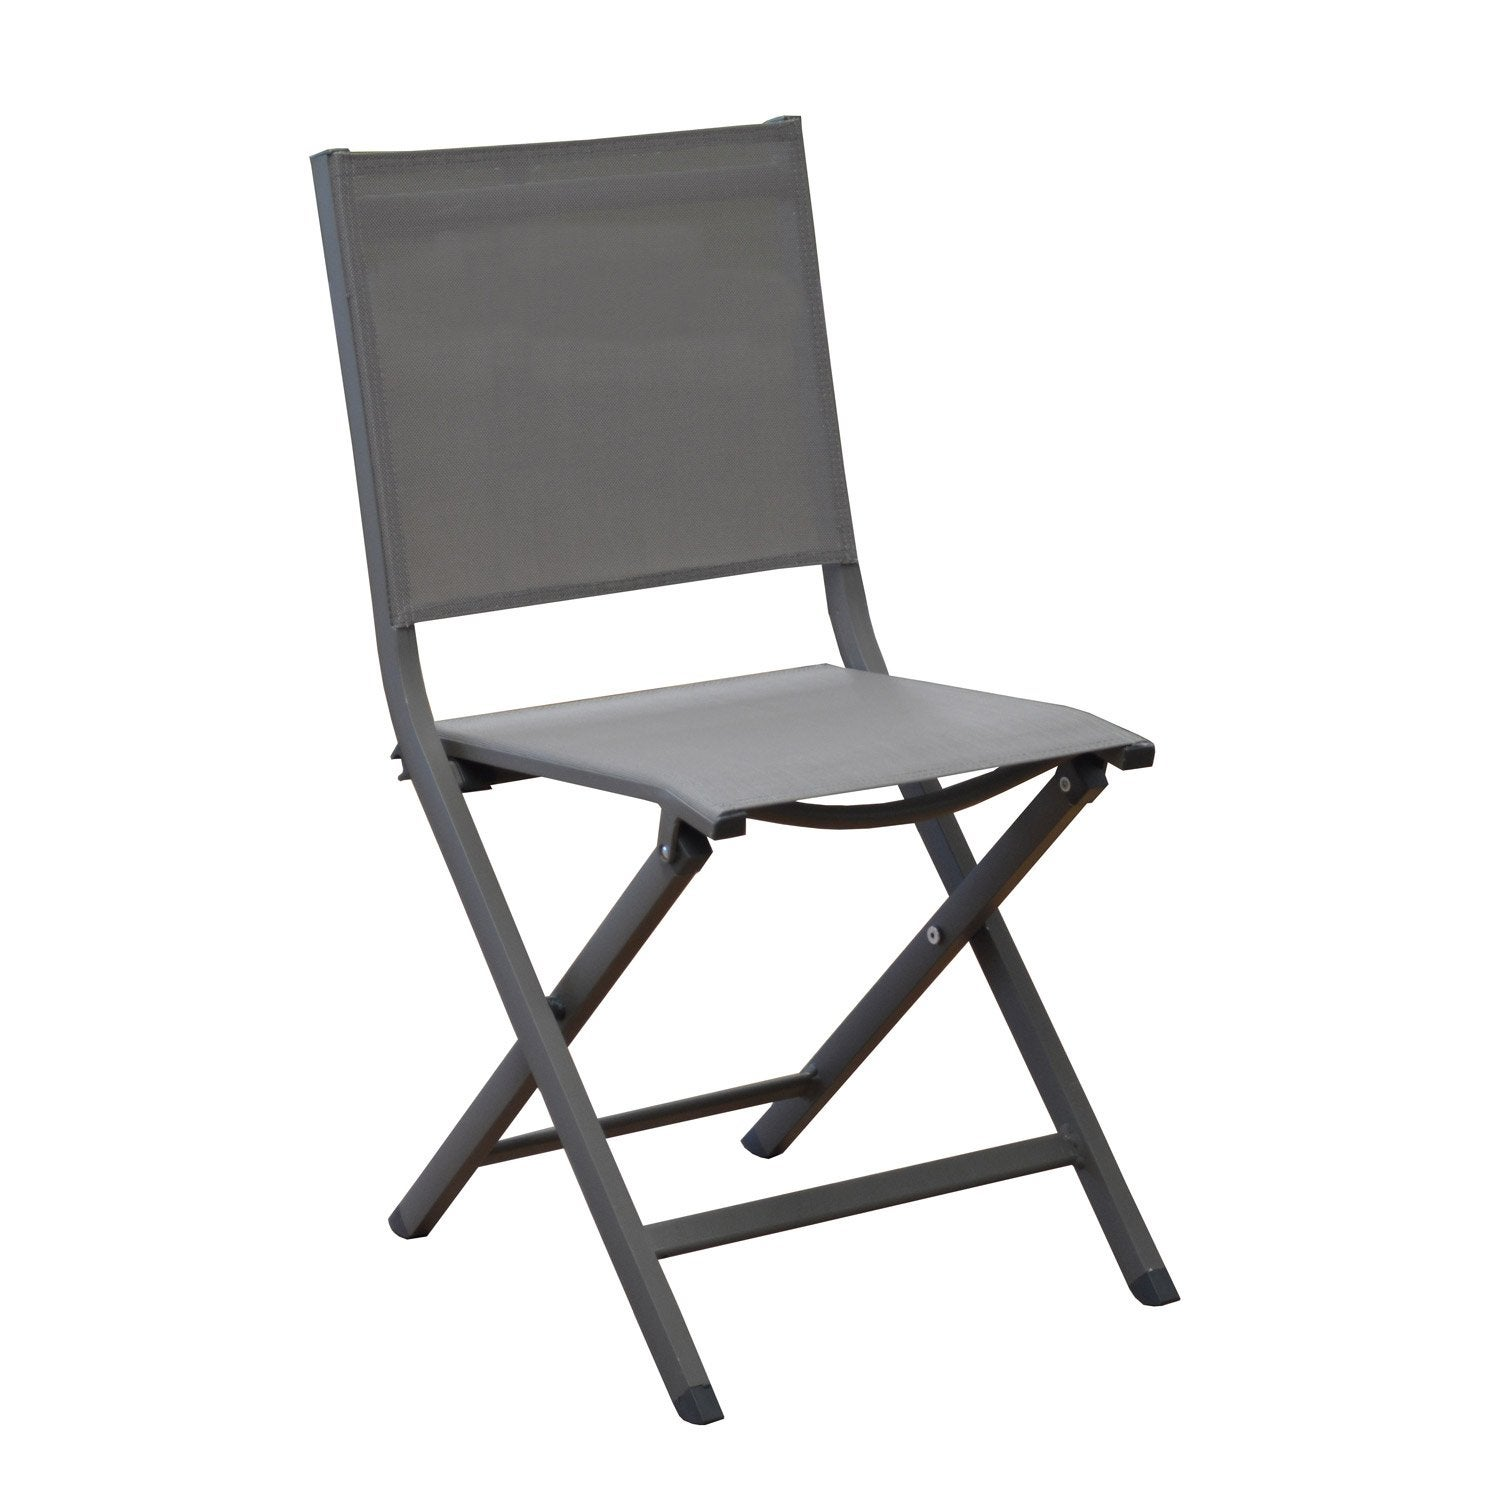 Chaise de jardin en aluminium th ma caf caf leroy merlin for Chaise jardin leroy merlin